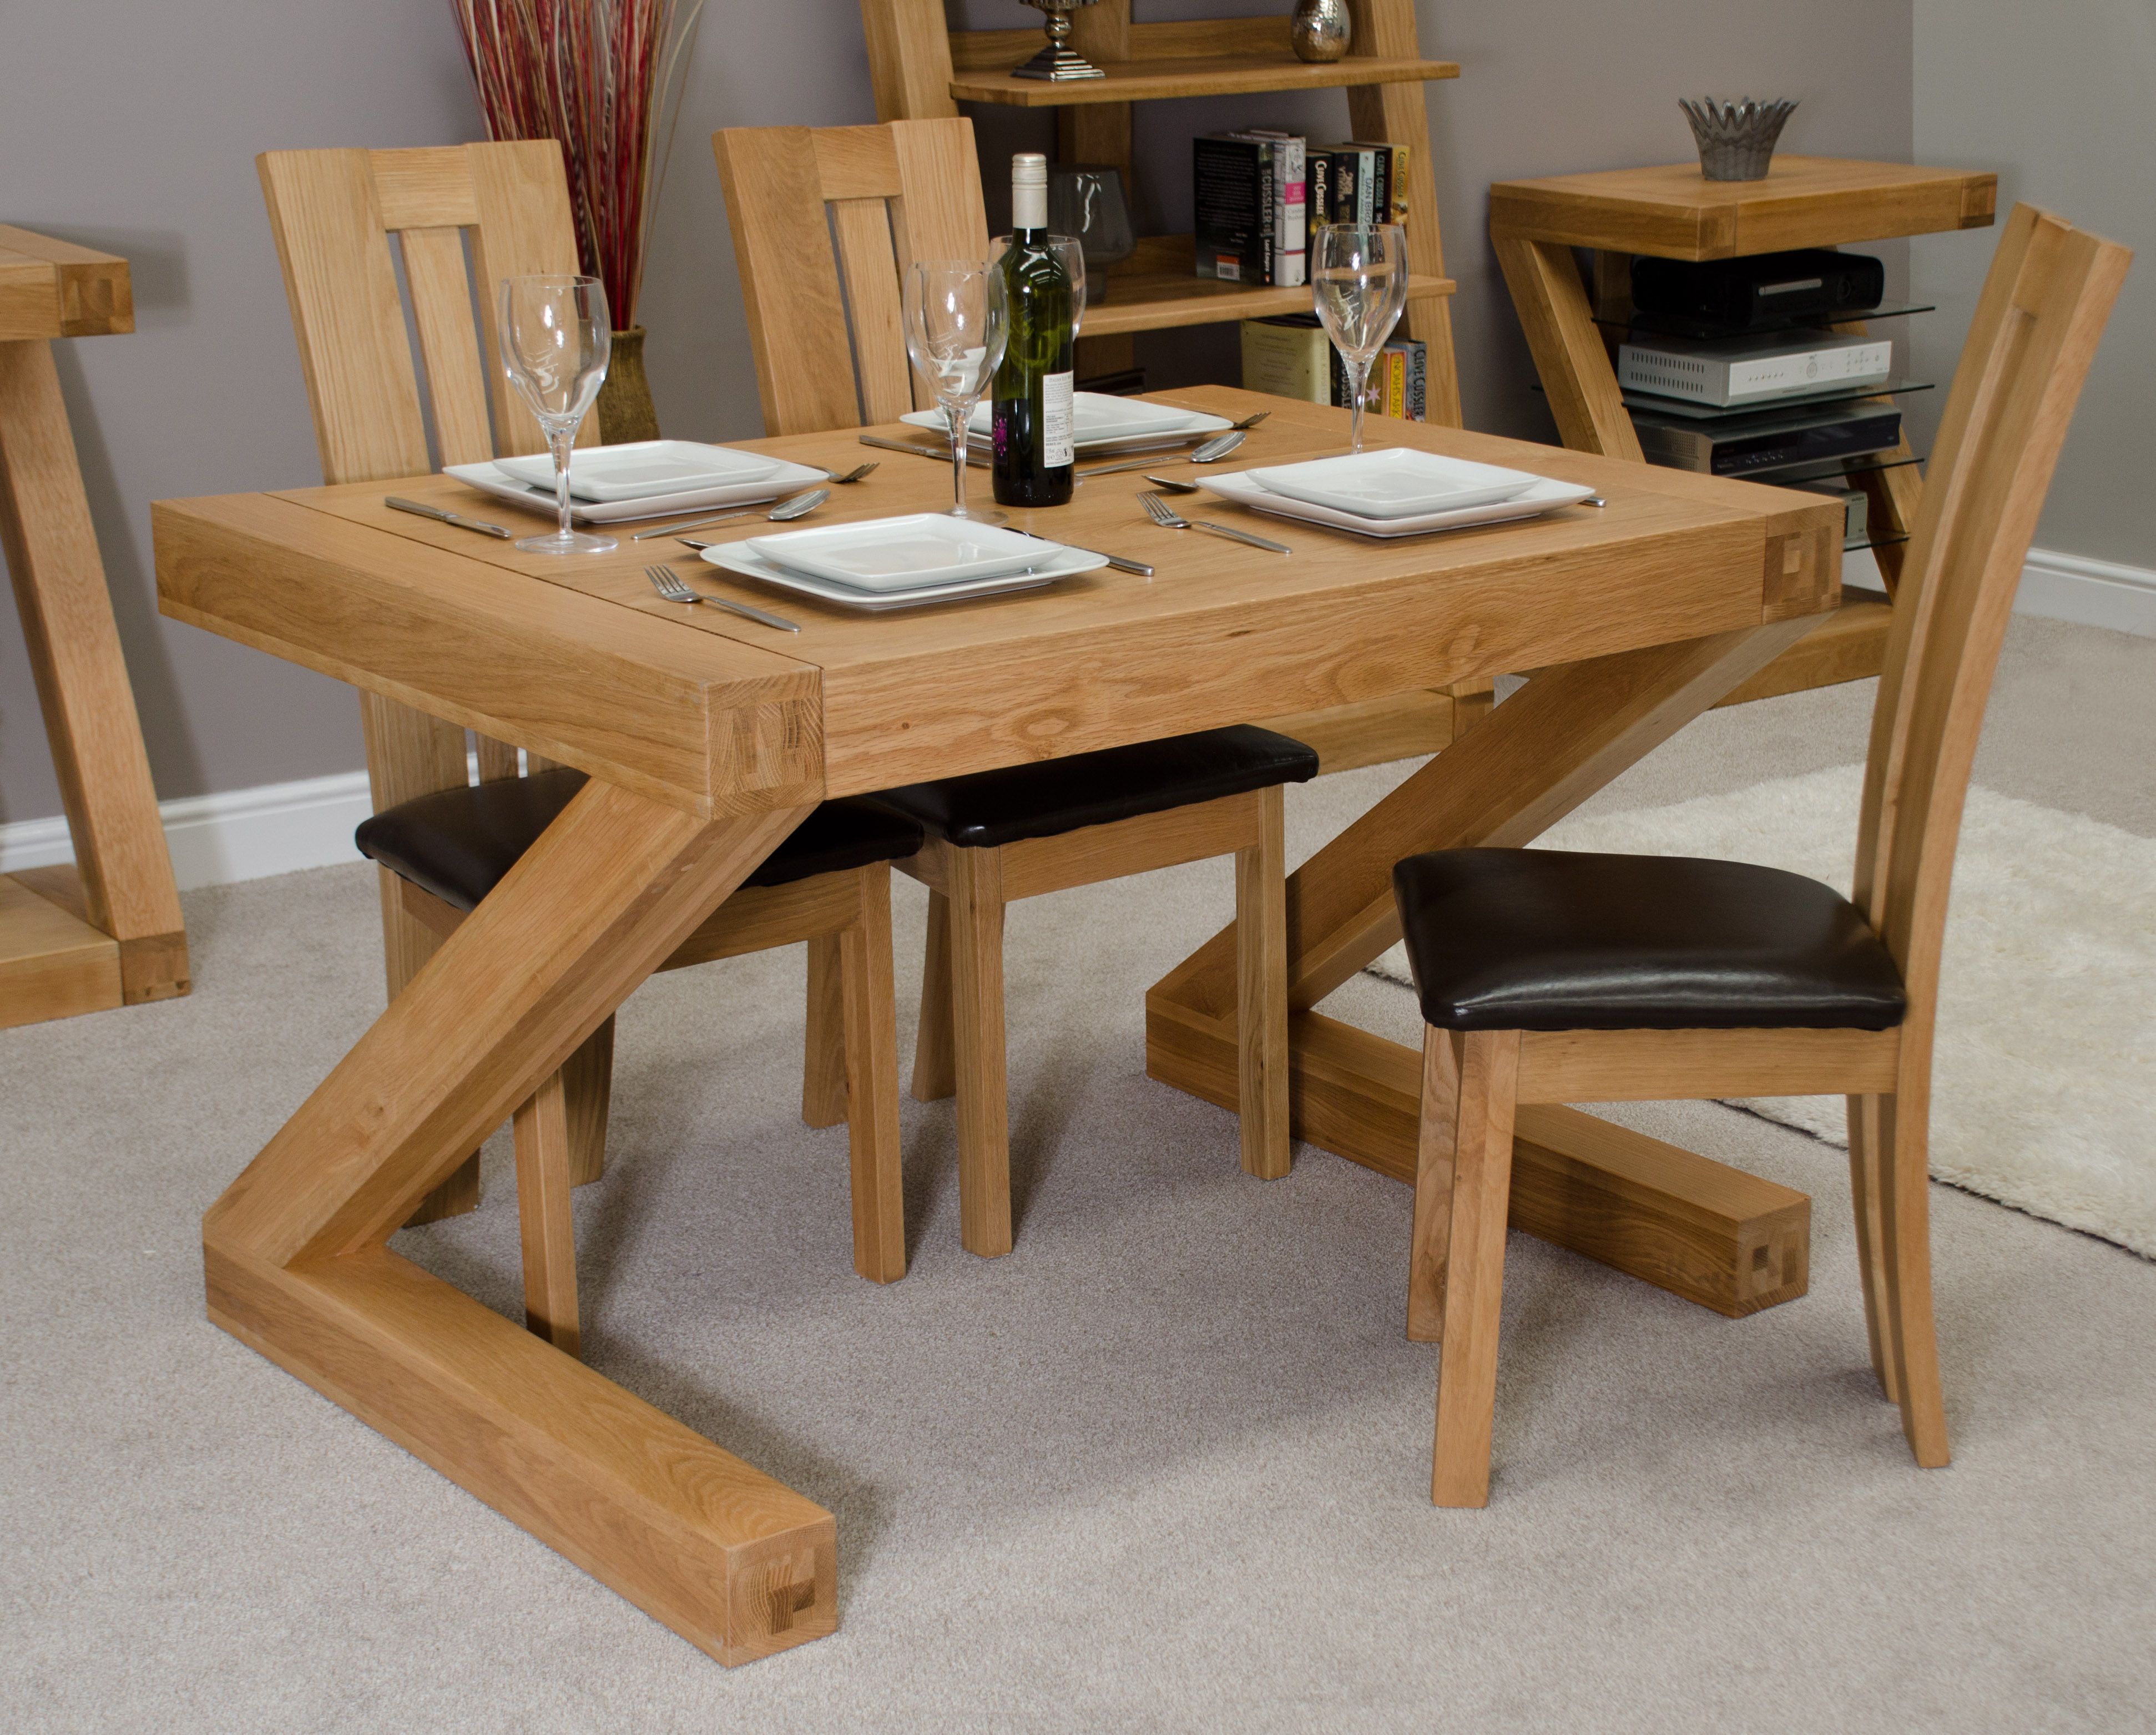 Awesome Zen Dining Room Design With Oak Dining Table And Chairs Delectable Space Saver Dining Room Table Inspiration Design